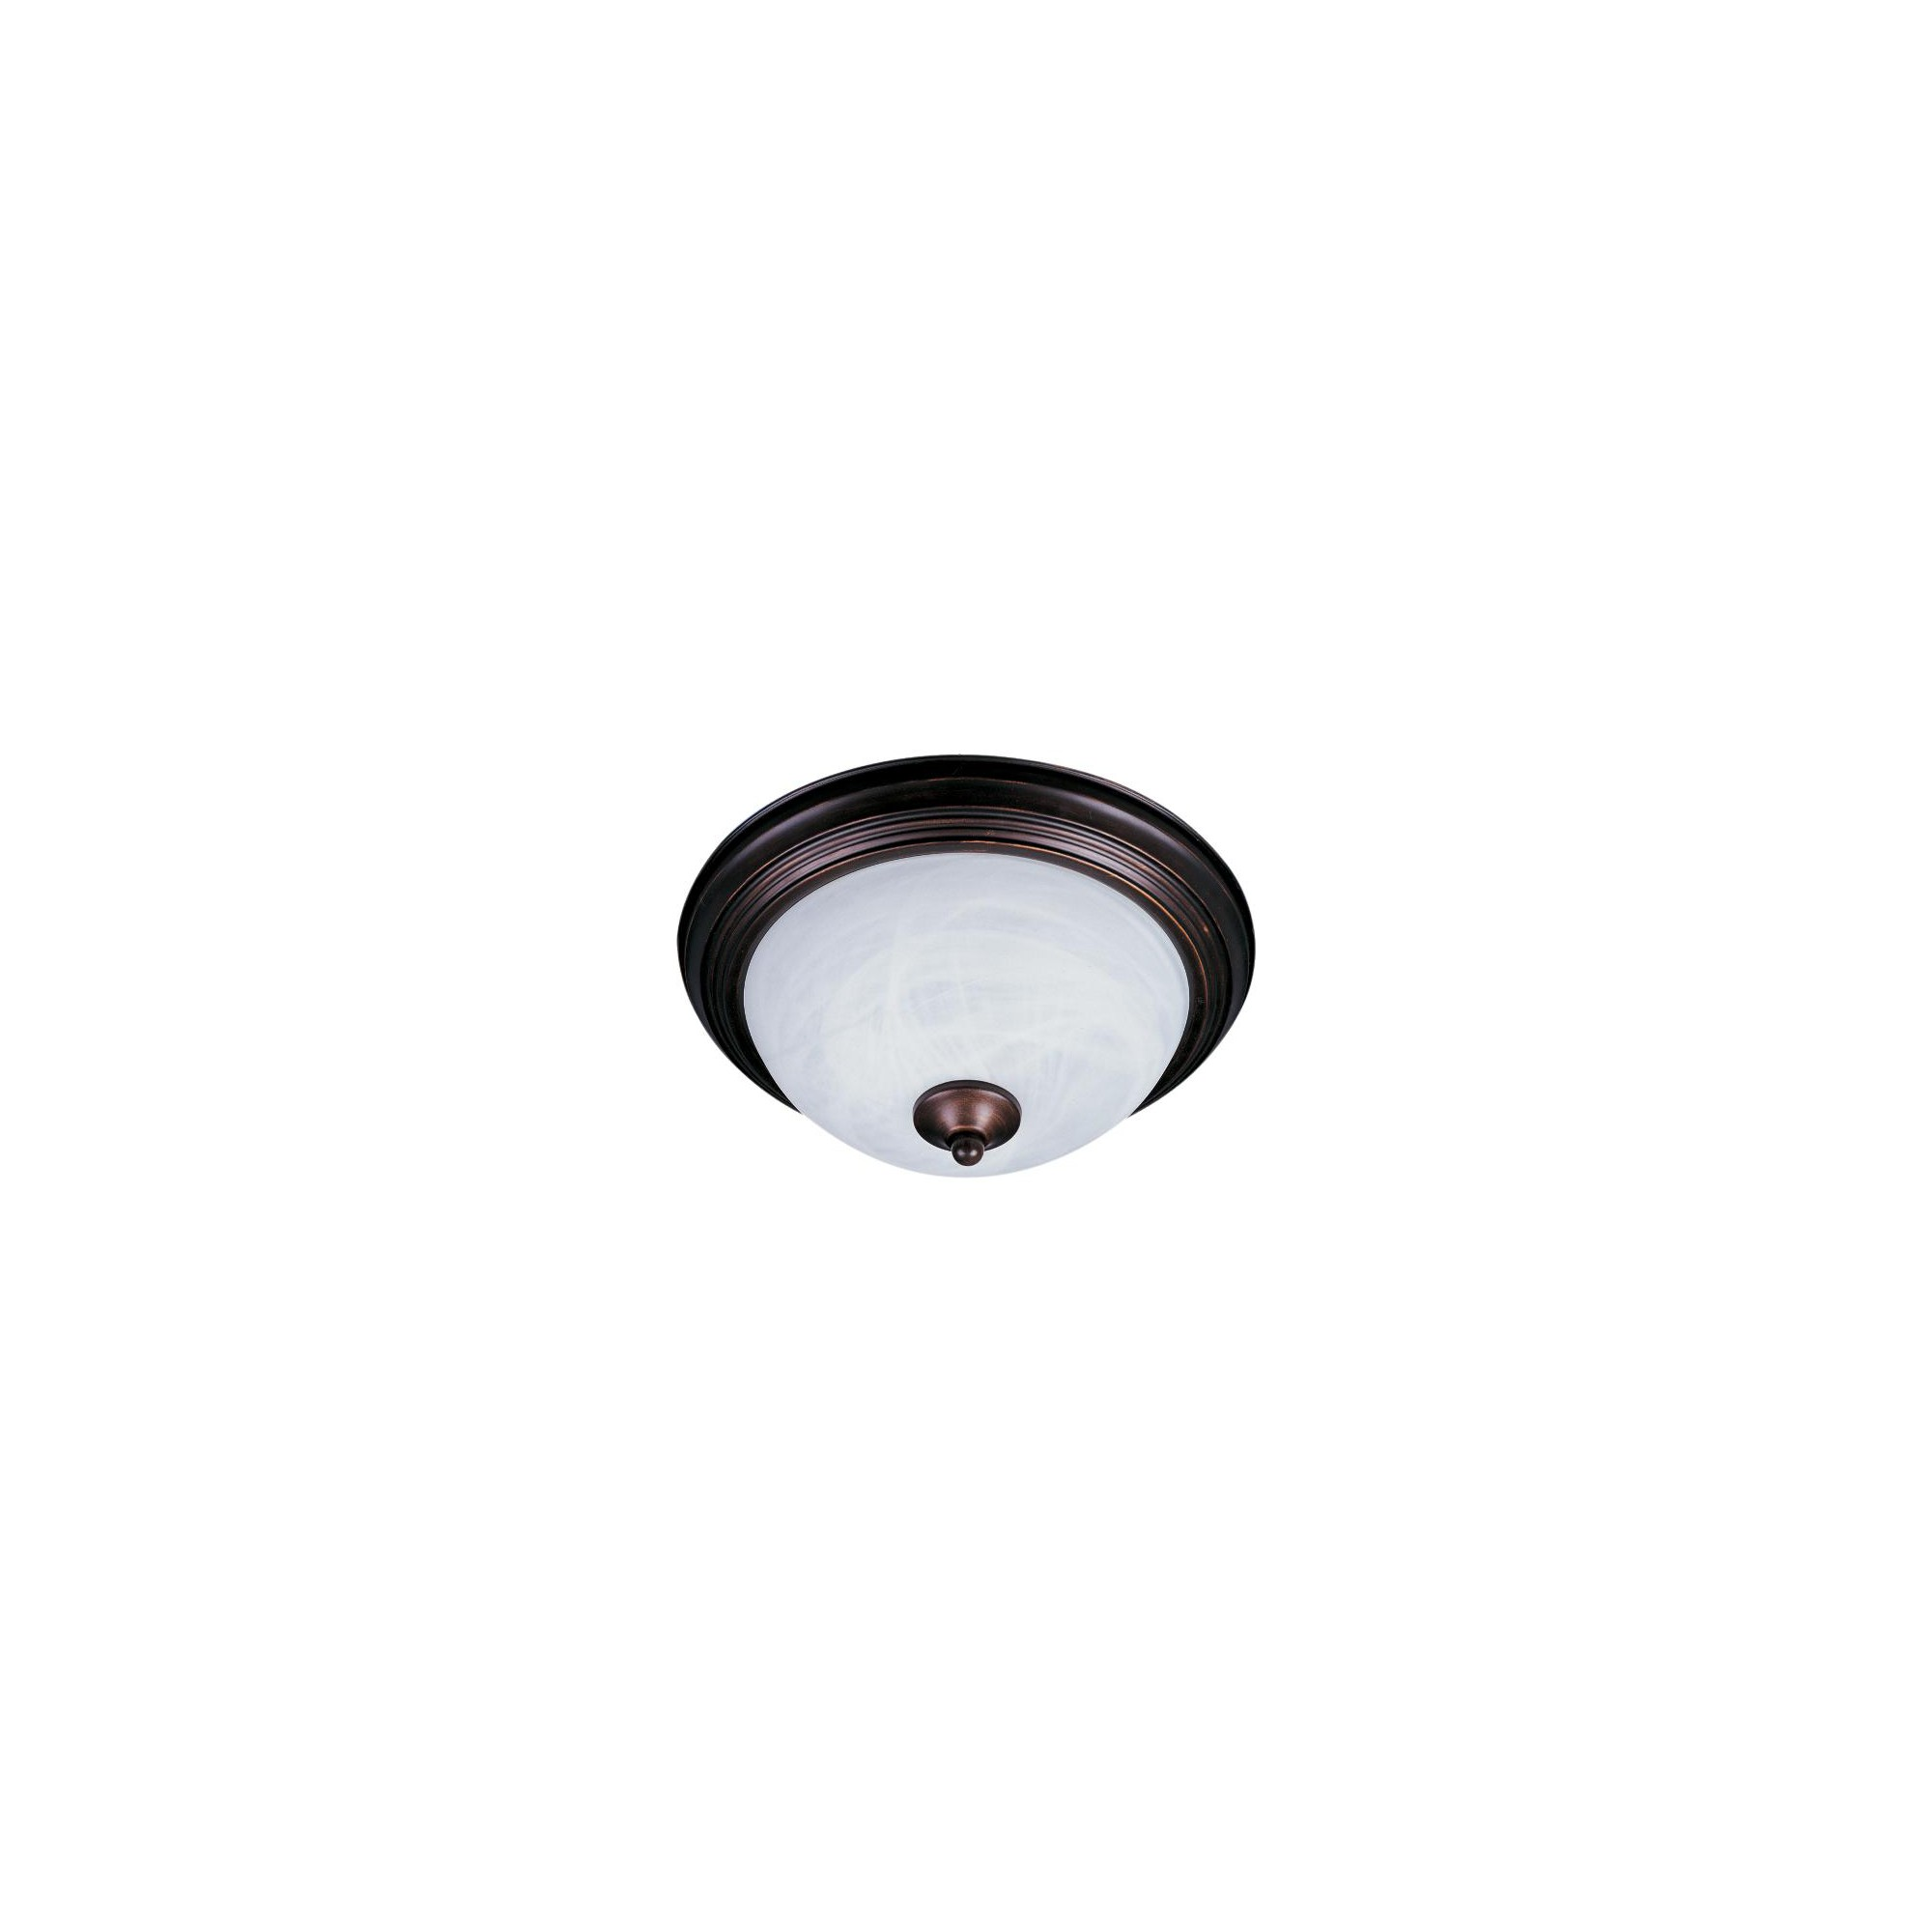 1 Light Flush Mount withDamp Location